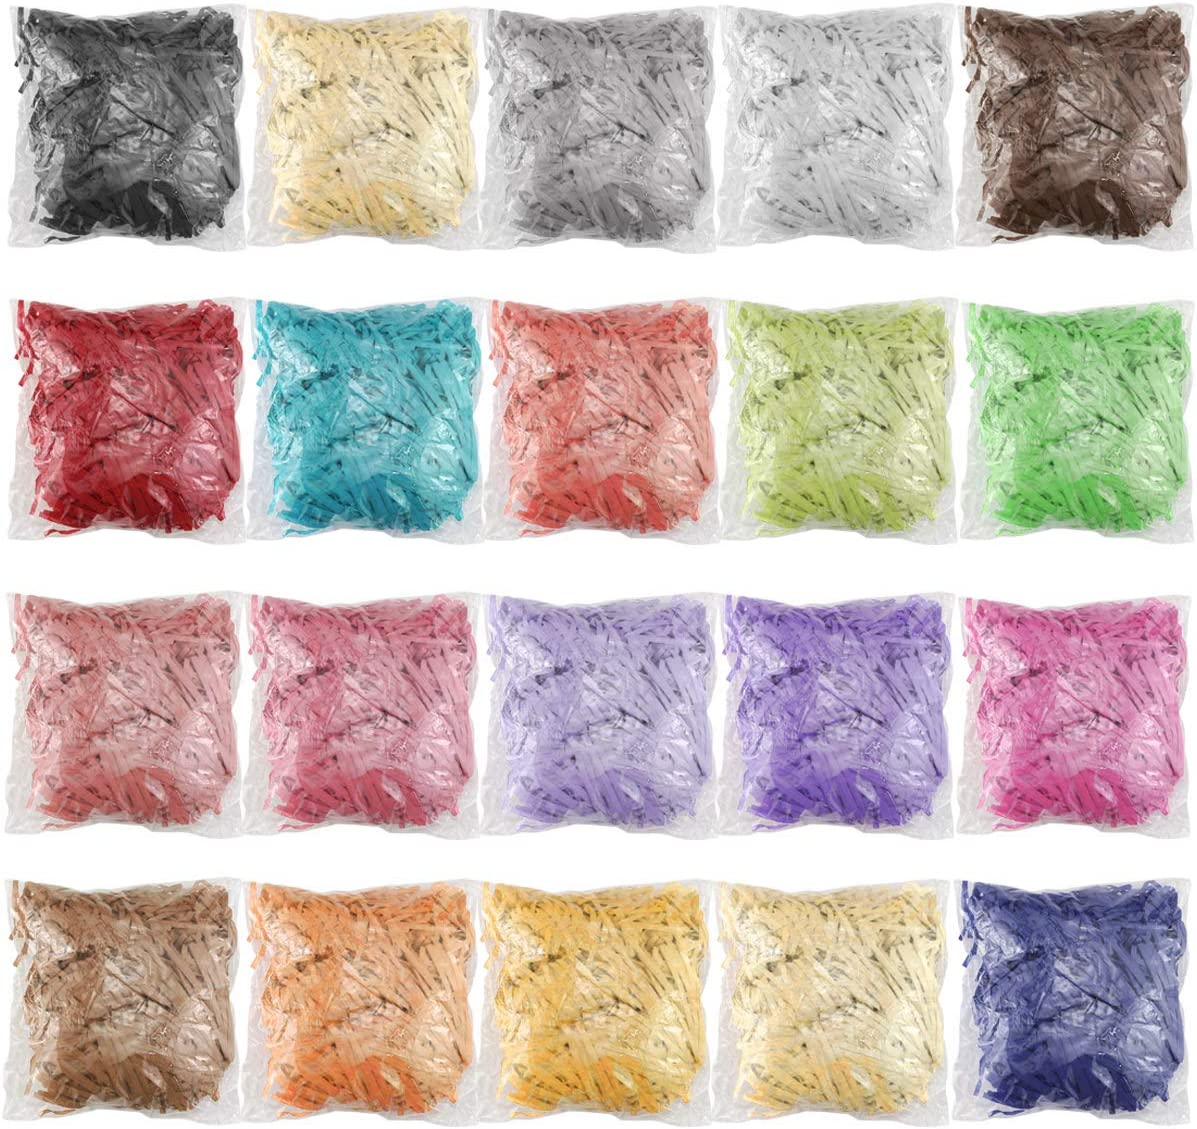 Twdrer 20Pack 14oz/400g Multicolored Raffia Paper Crinkle Confetti Shredded Shreds for Tissue Paper Gift Wrapping,Craft DIY,Basket Packaging Filling,Easter Decoration